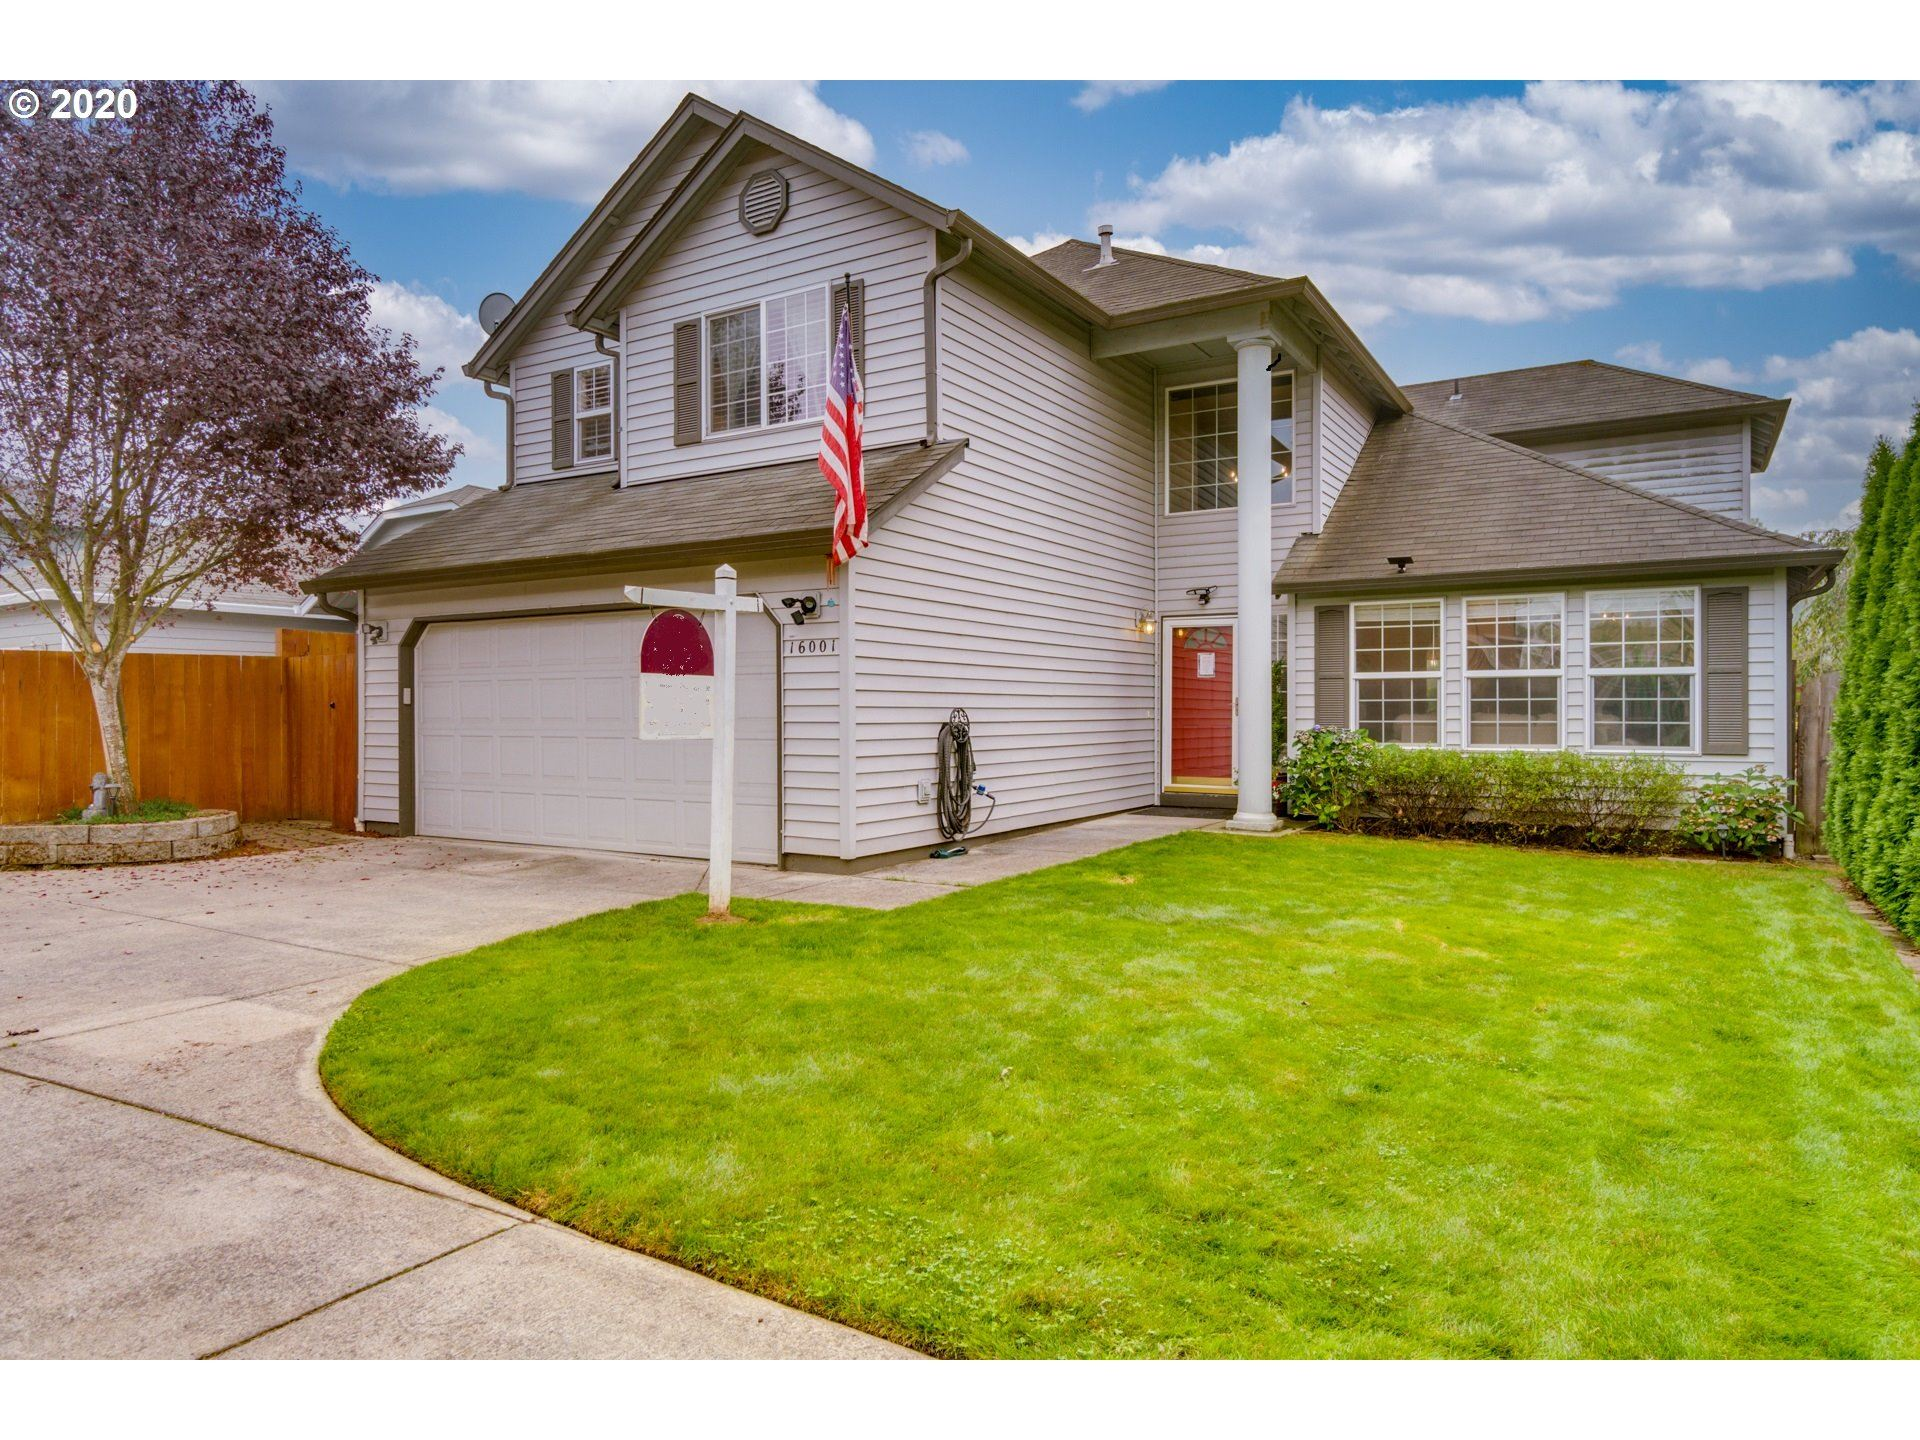 16001 NE 72ND CIR, Vancouver, WA 98682 - MLS#: 20400877